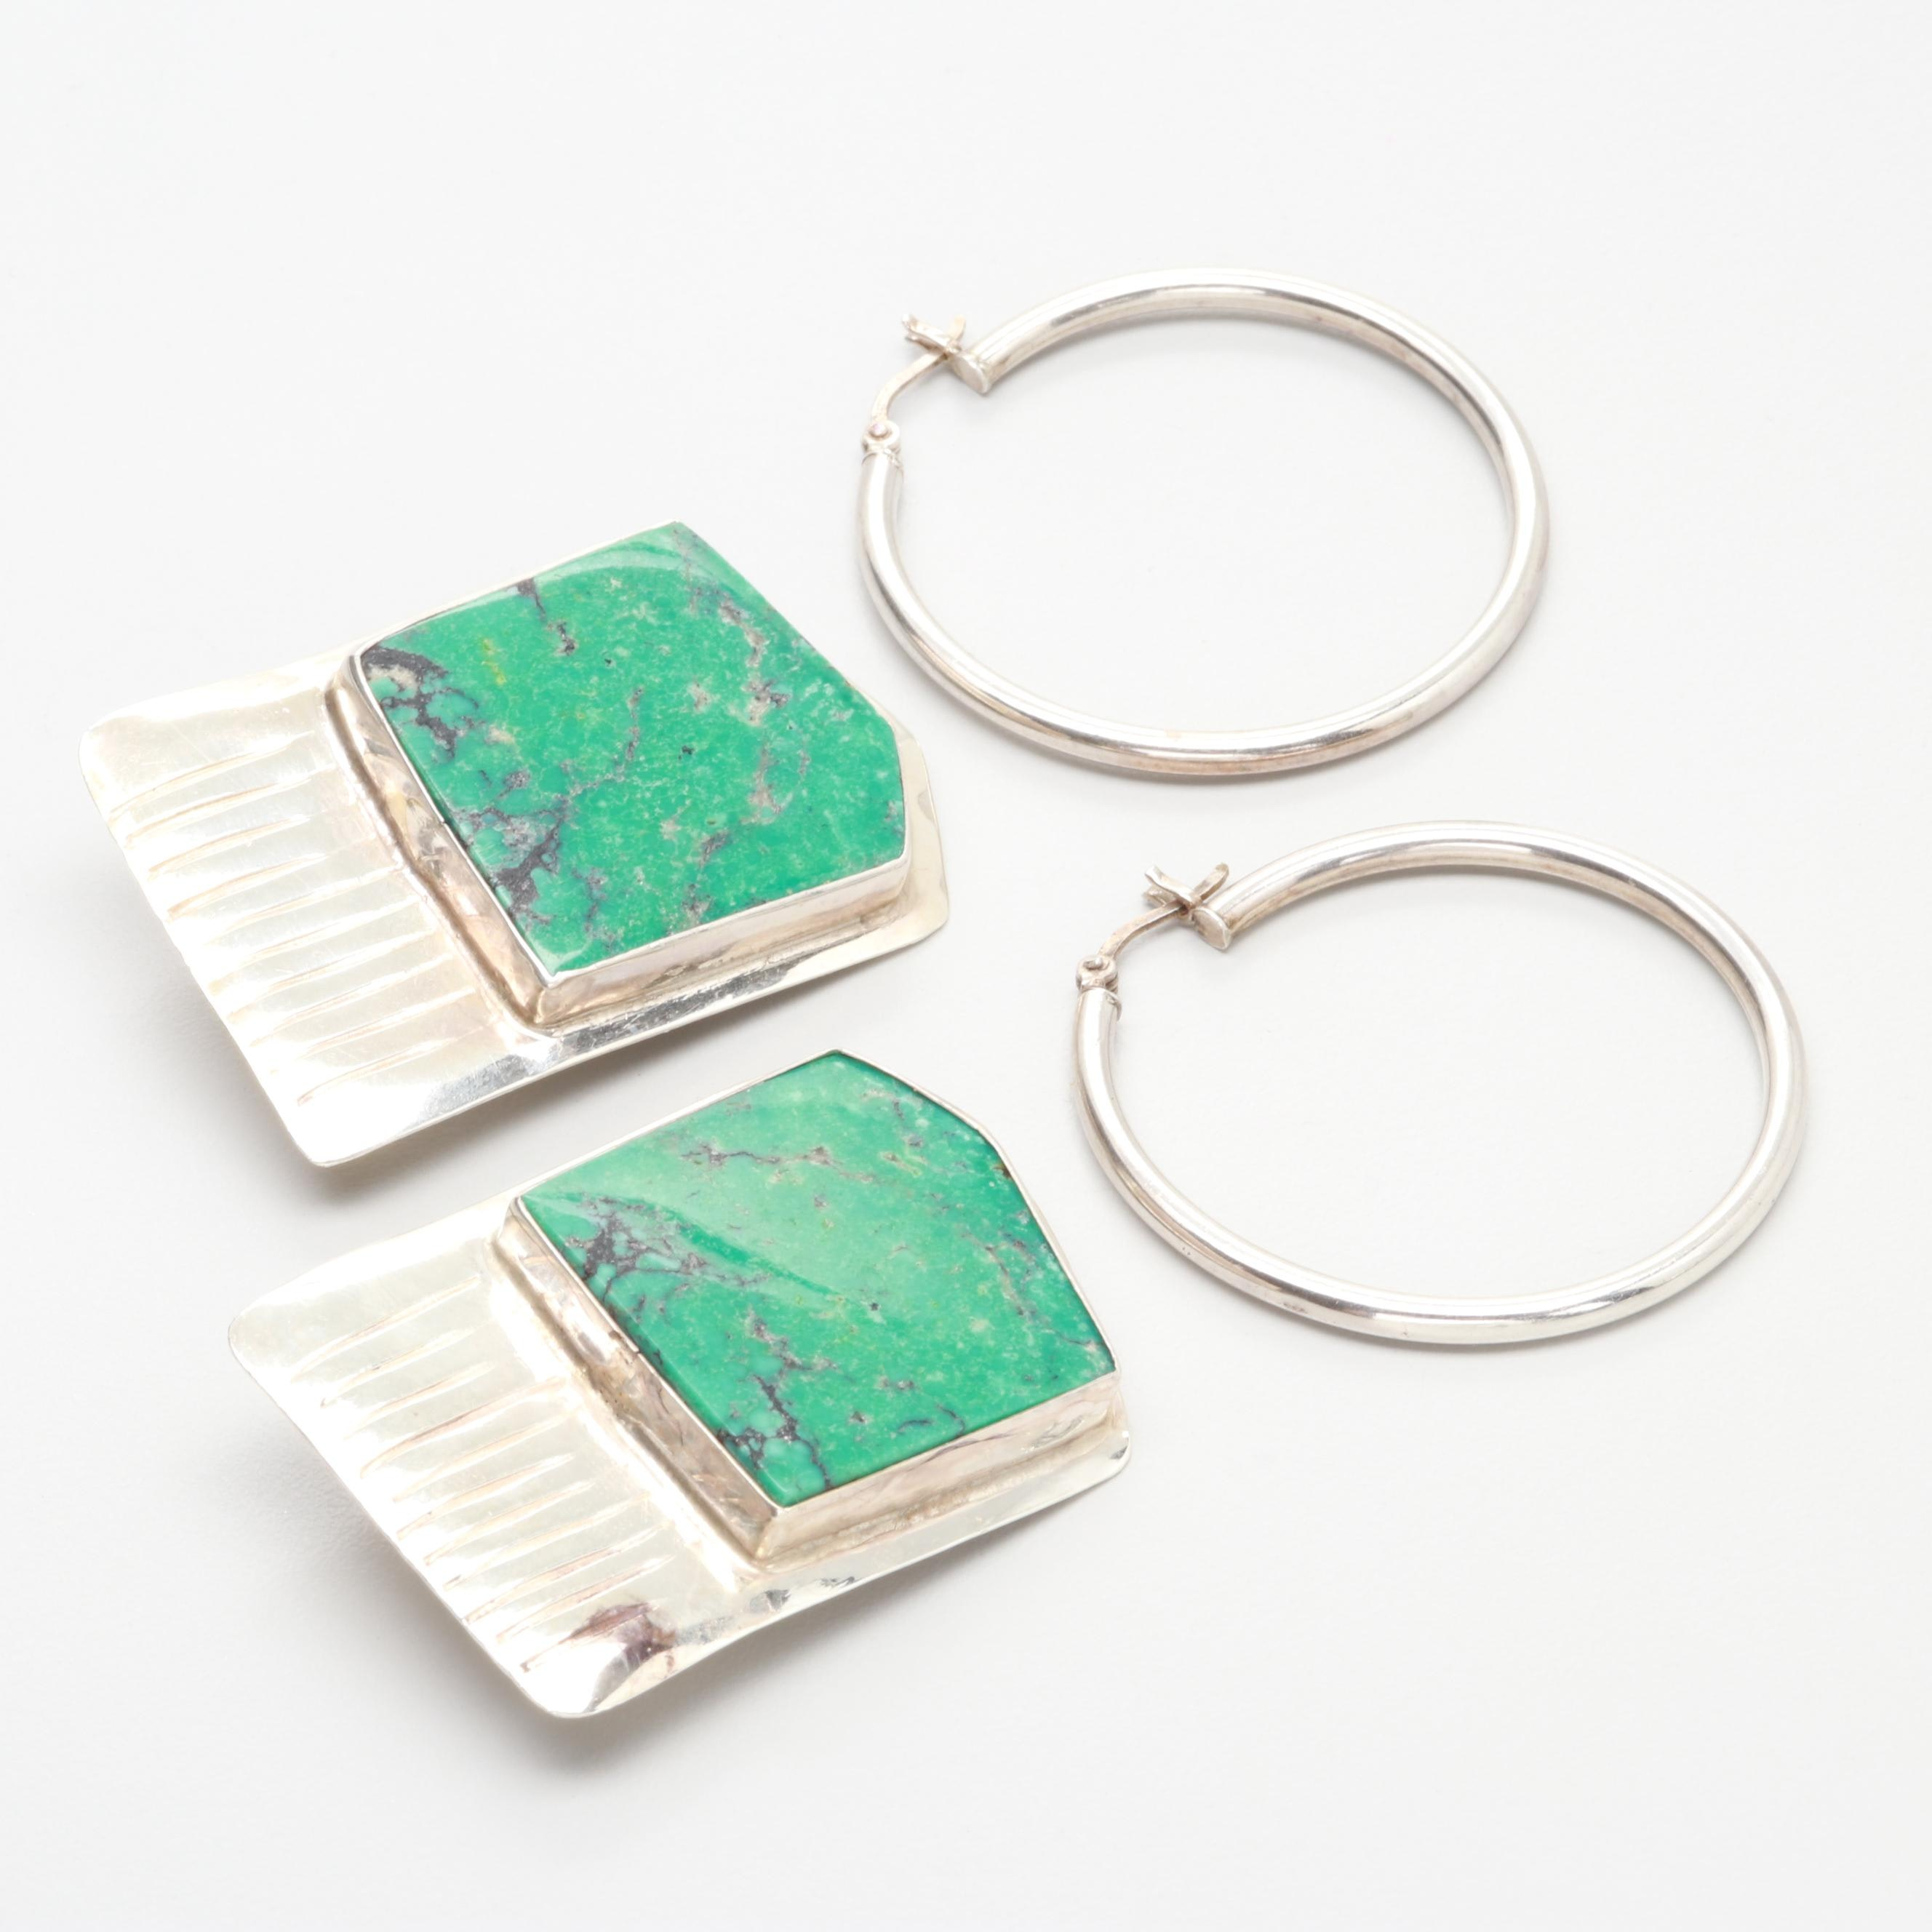 Sterling Silver Earring Assortment with Mathews Sterling Turquoise Earrings